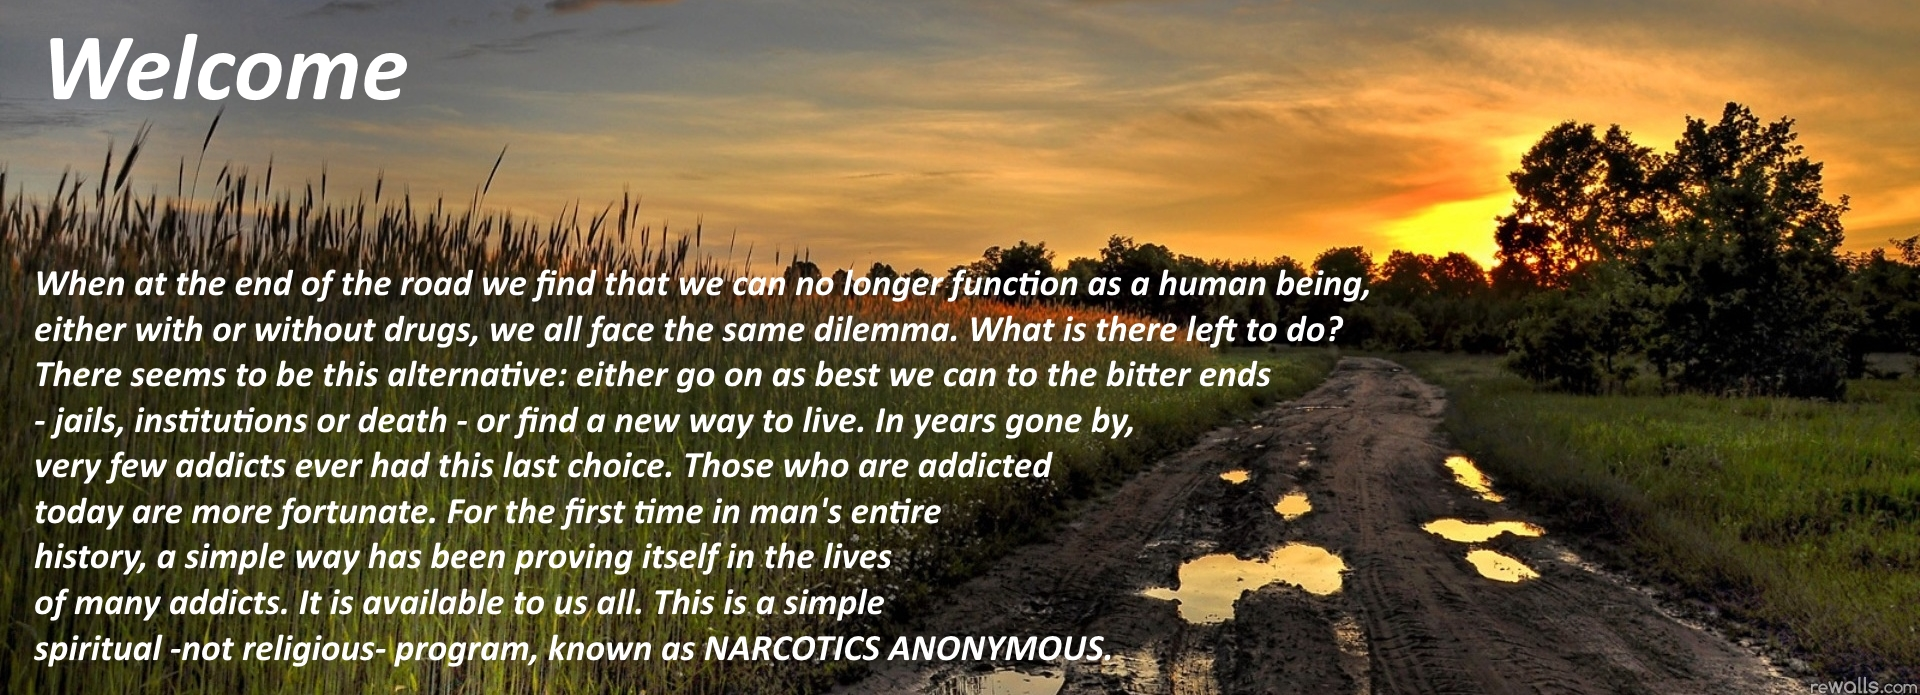 Forest Area of Narcotics Anonymous